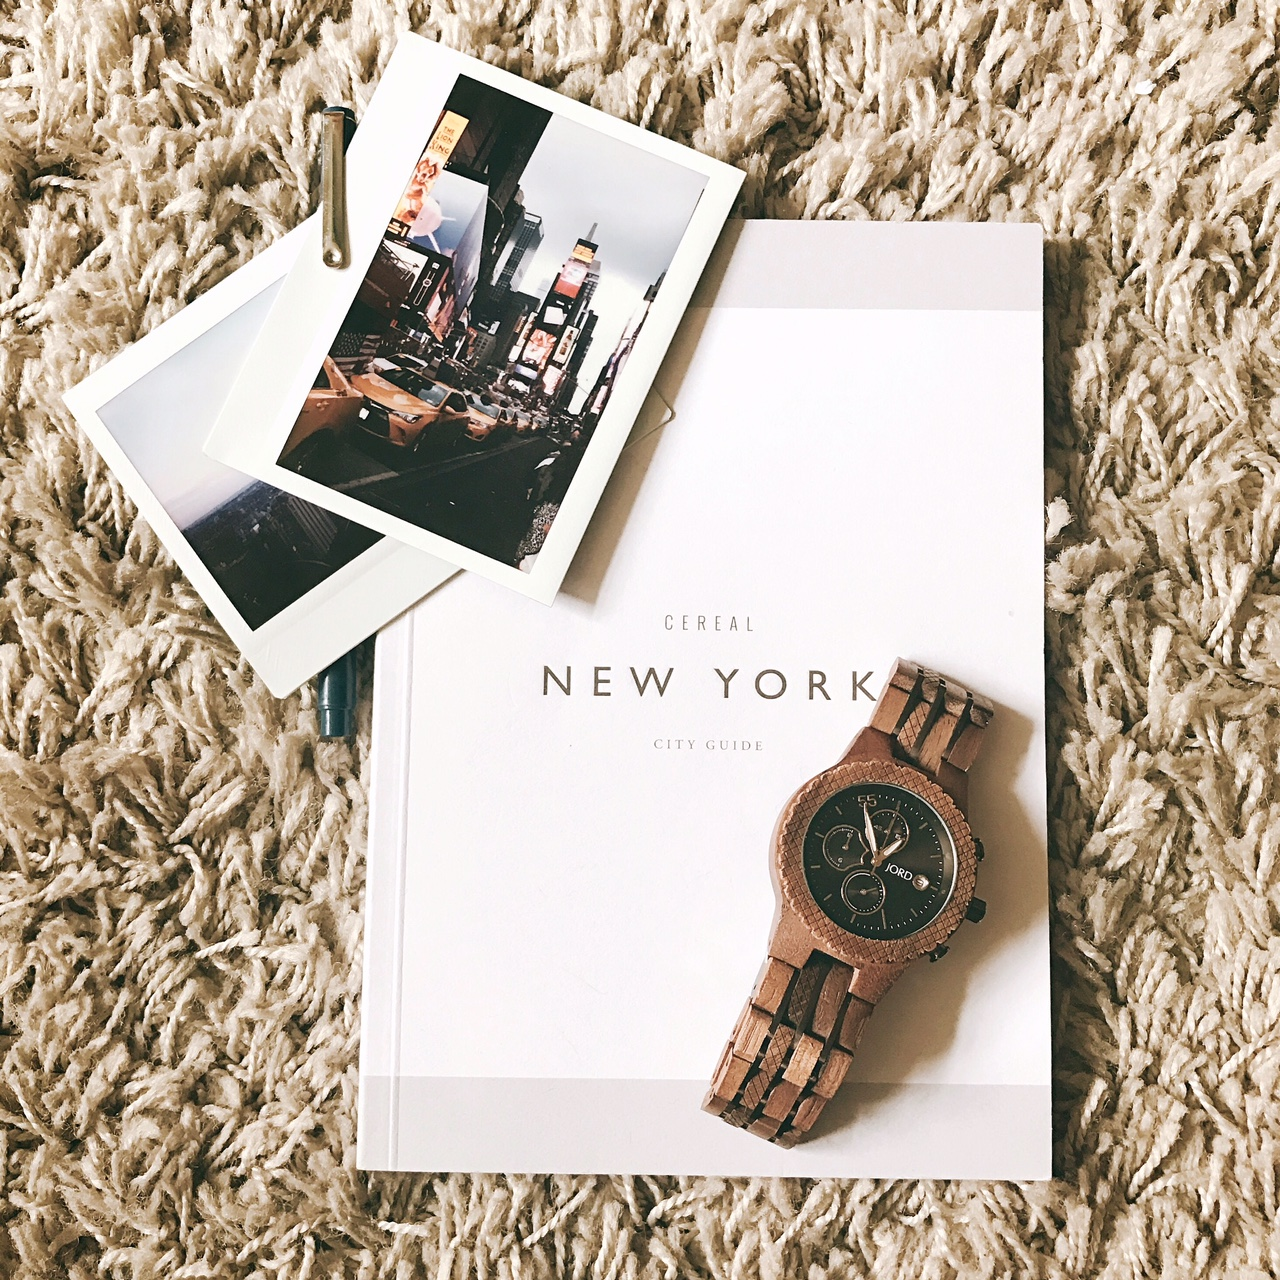 jord wood watch, wood watches, spring style, spring accessory, style guides, spring blooms, portland style blogger, the ptown girls, pdx style, organization,